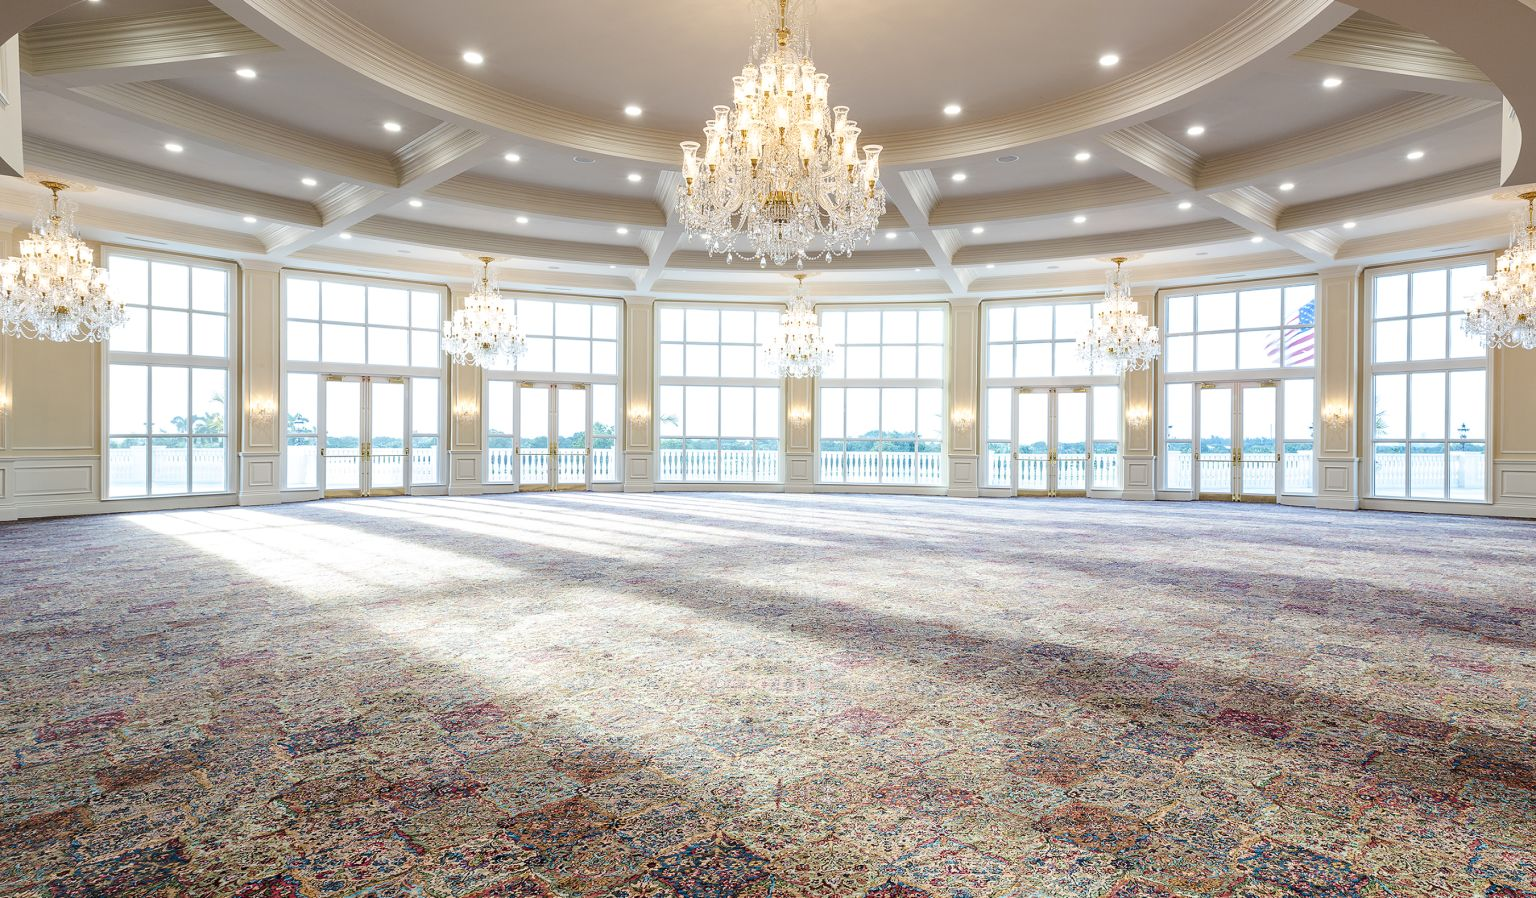 event space with large windows